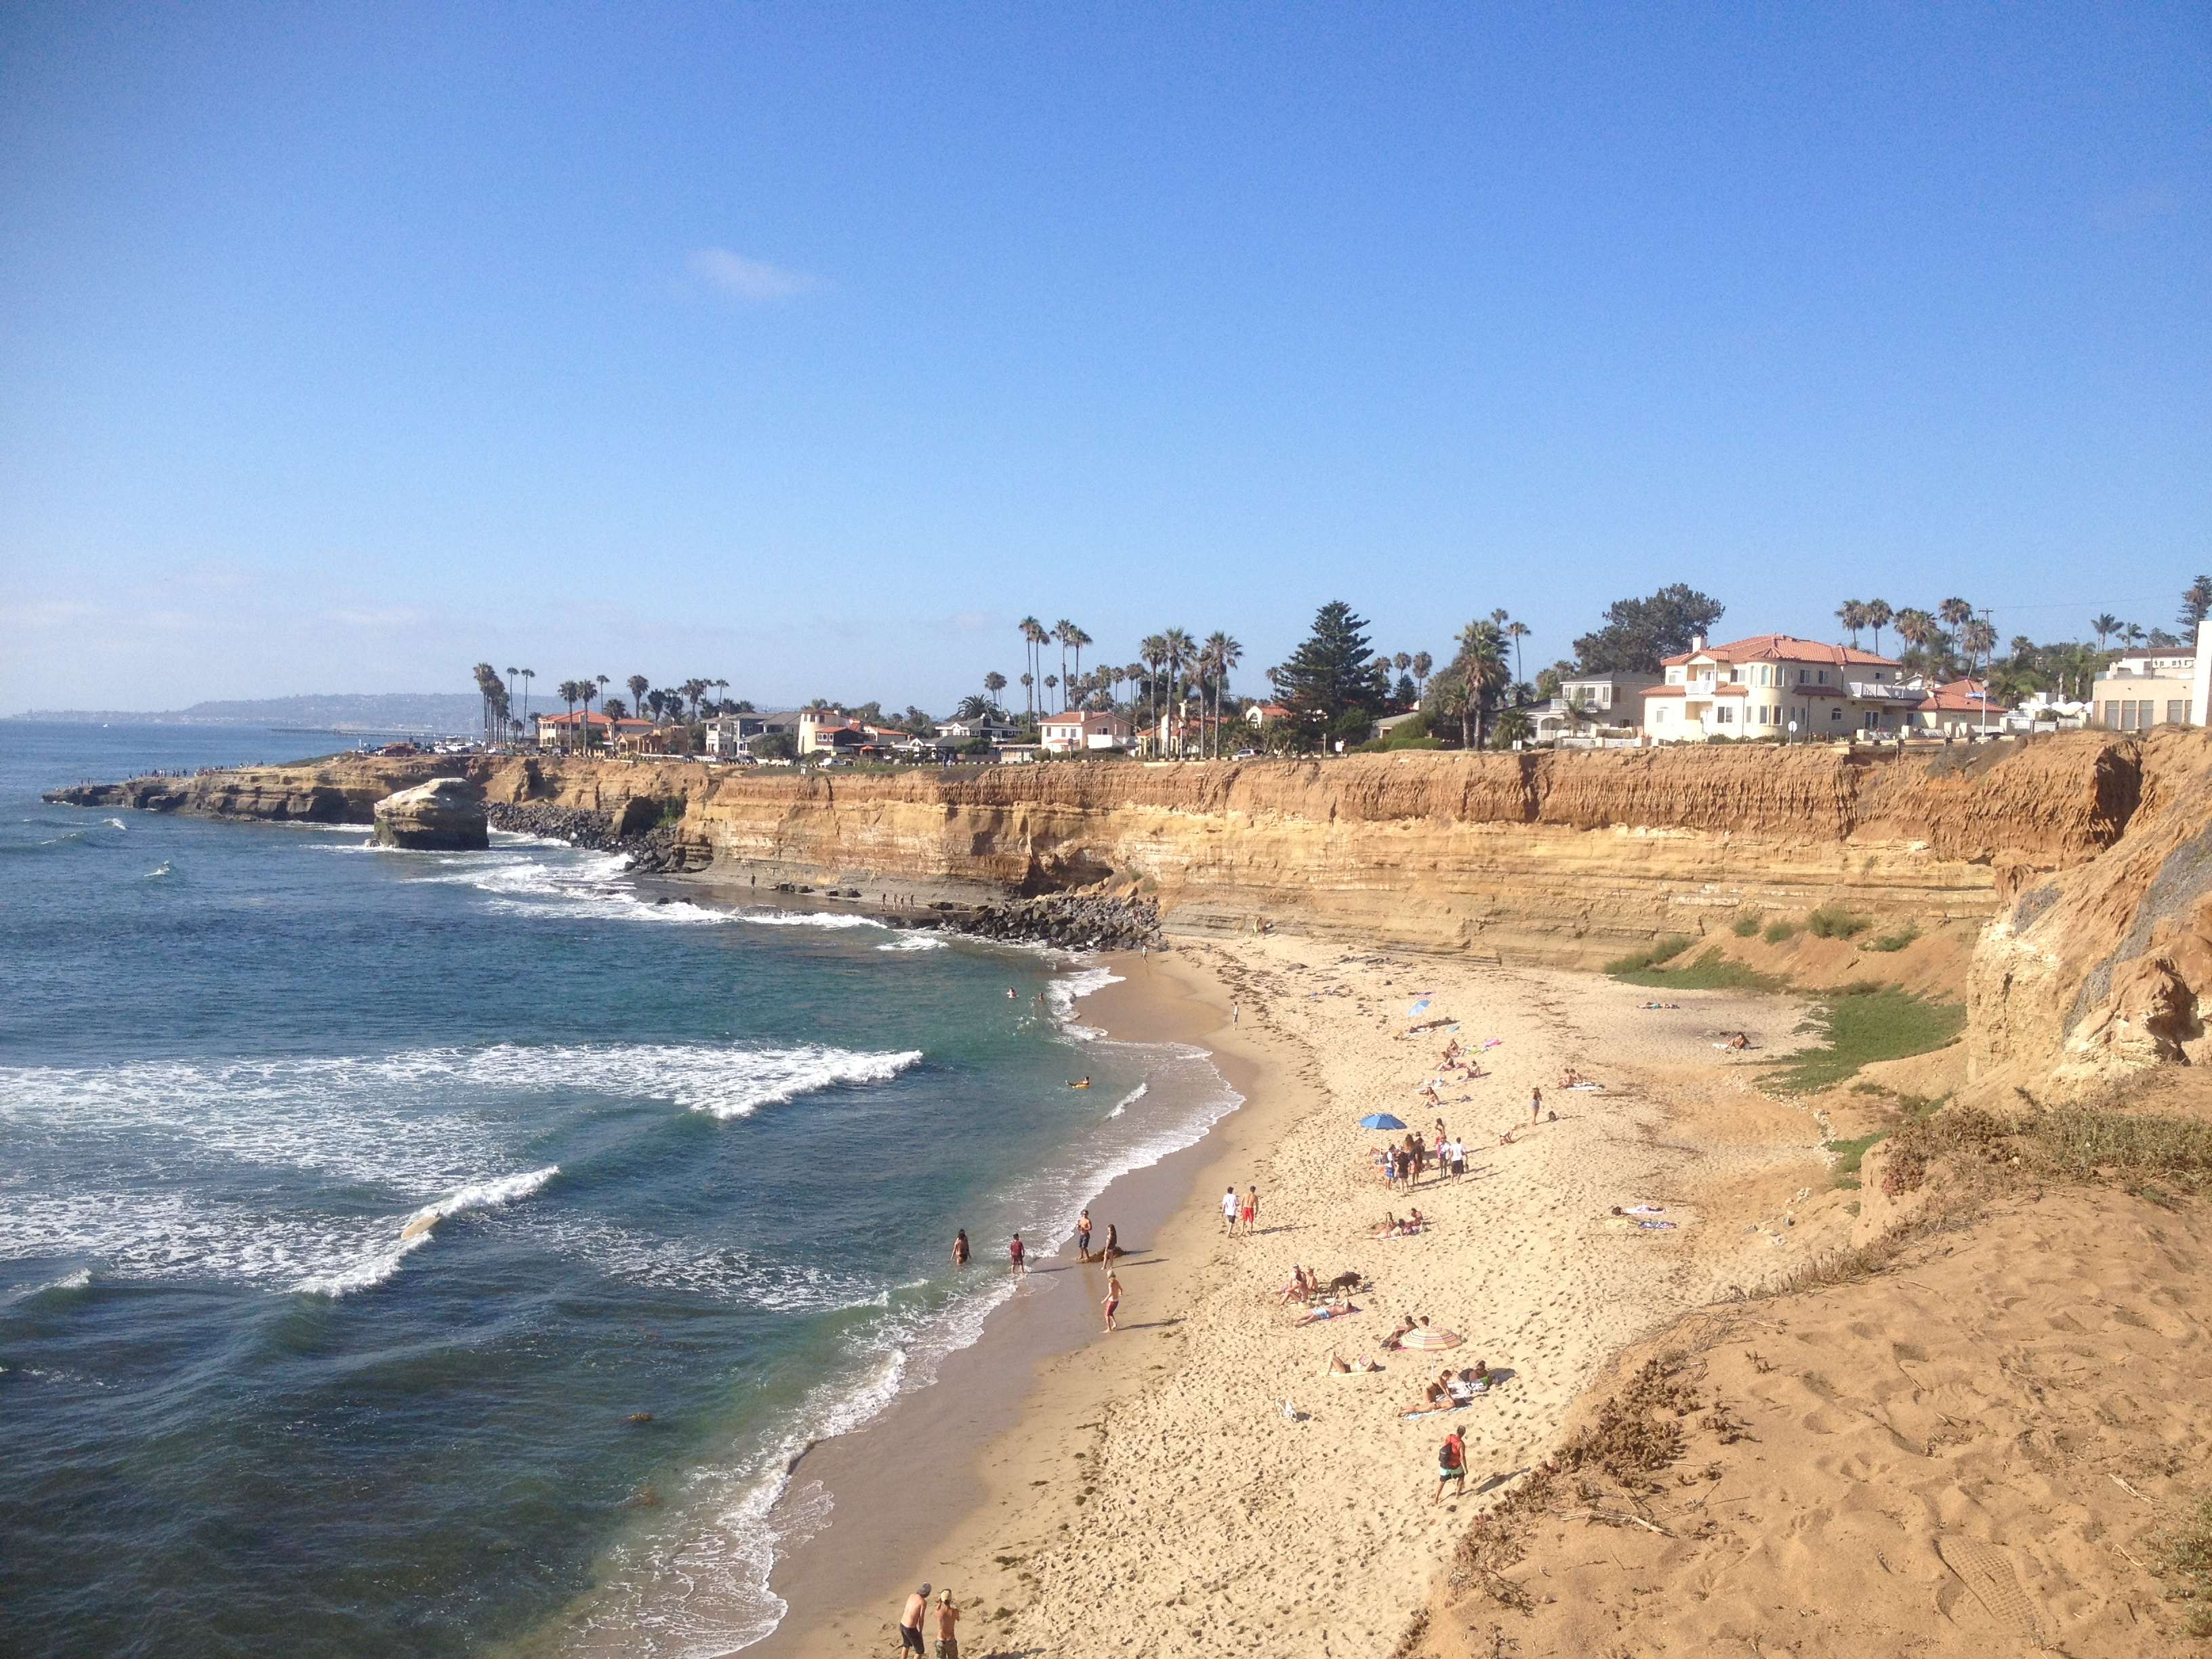 Where to Get Sun on Those Buns: My Guide To San Diego Beaches